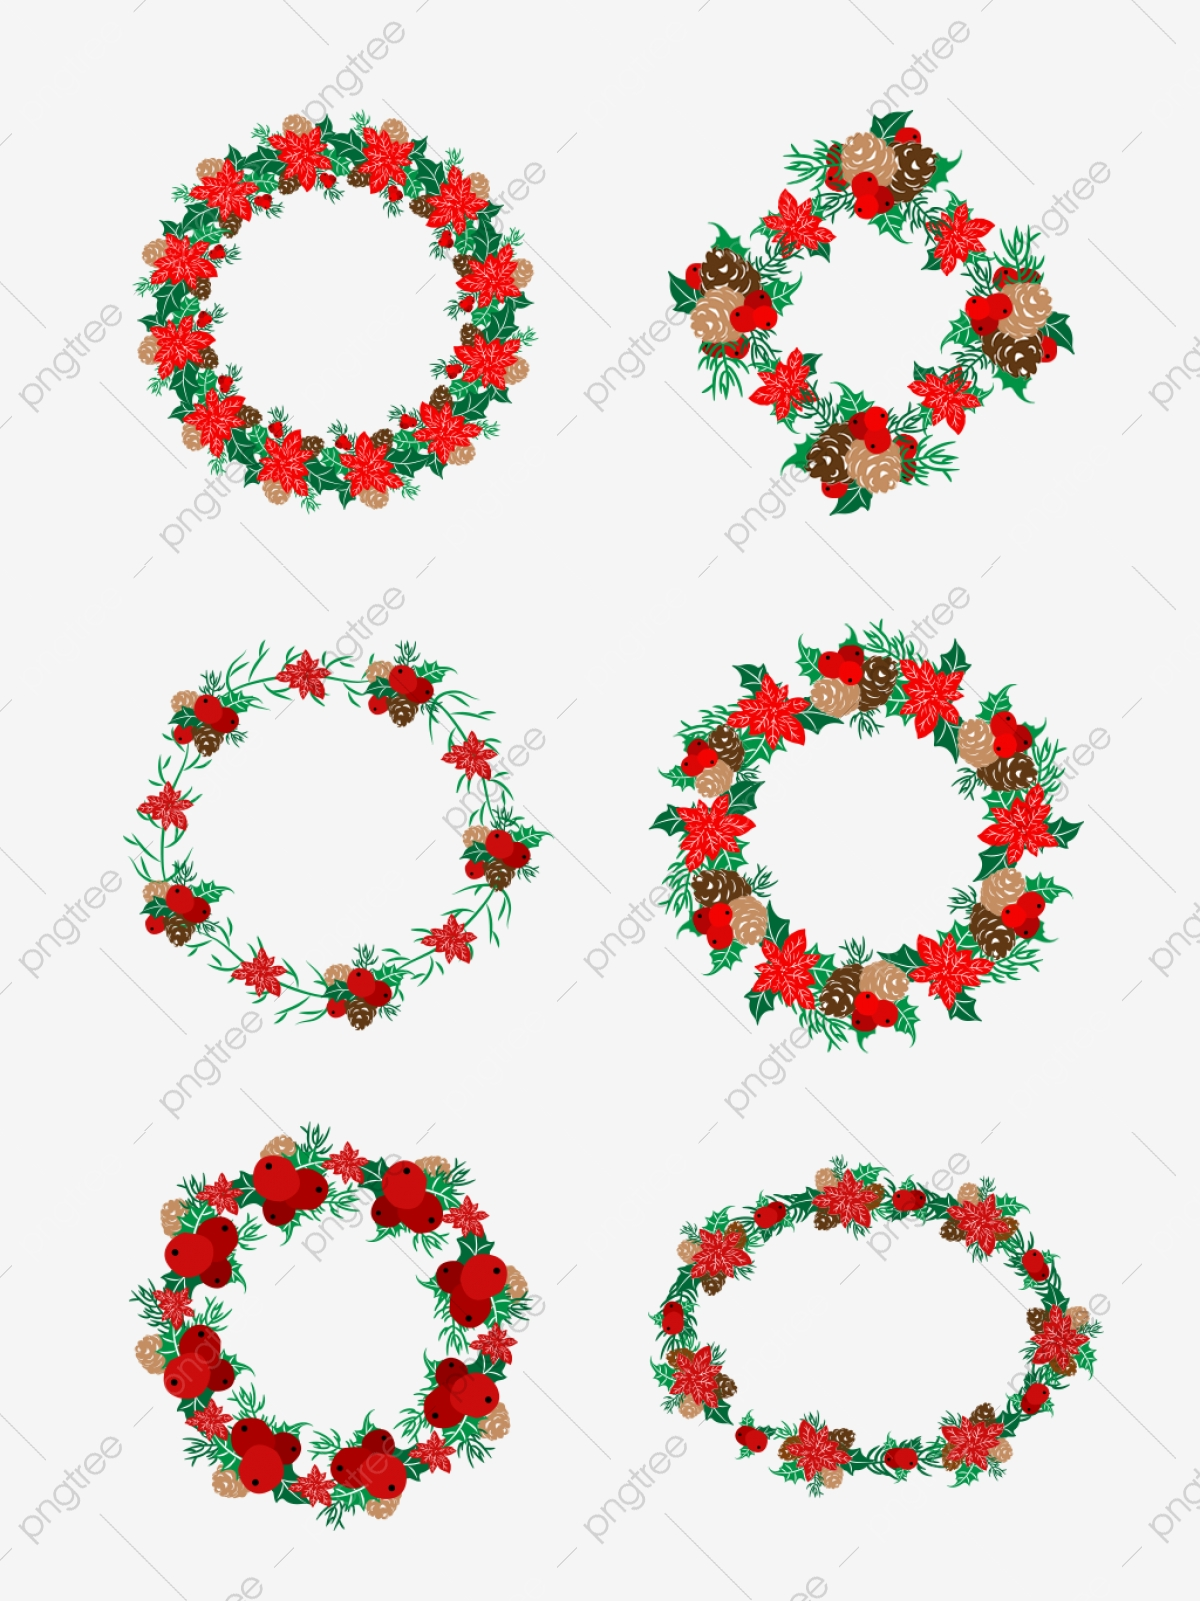 Christmas Garland Set Of Illustration Elements Wreath Christmas